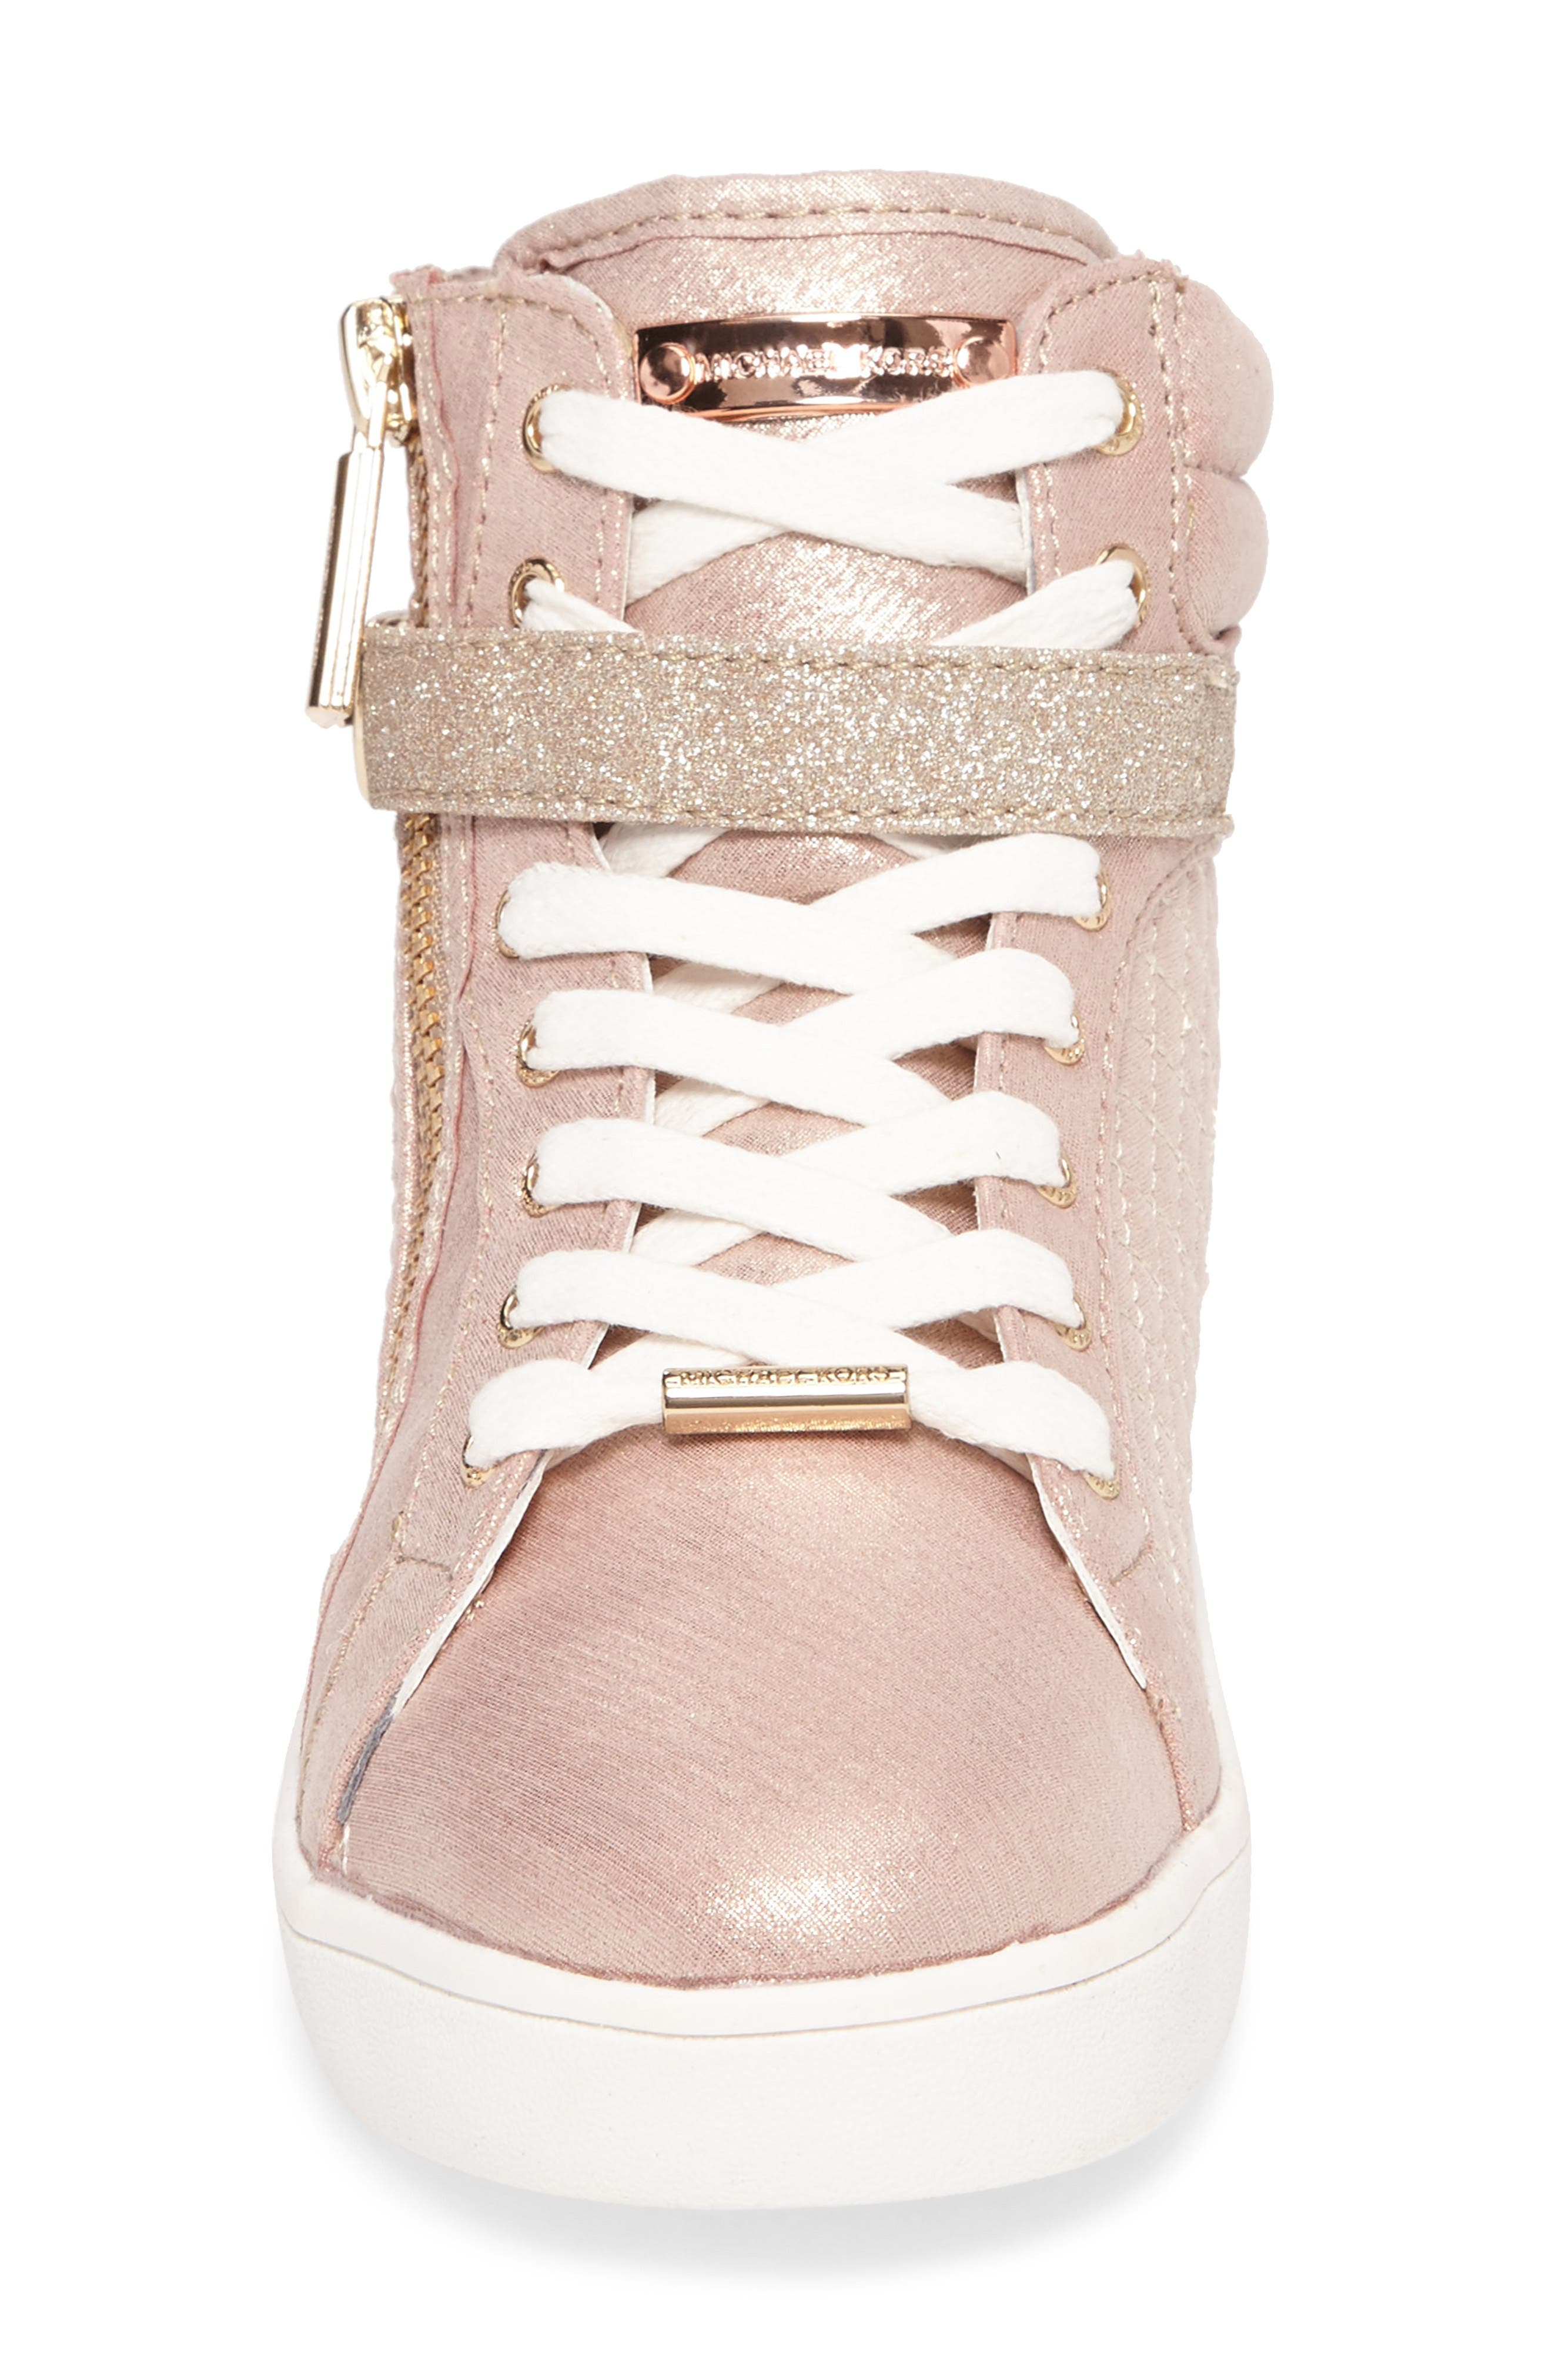 Ivy Rio Glittery High Top Sneaker,                             Alternate thumbnail 4, color,                             220